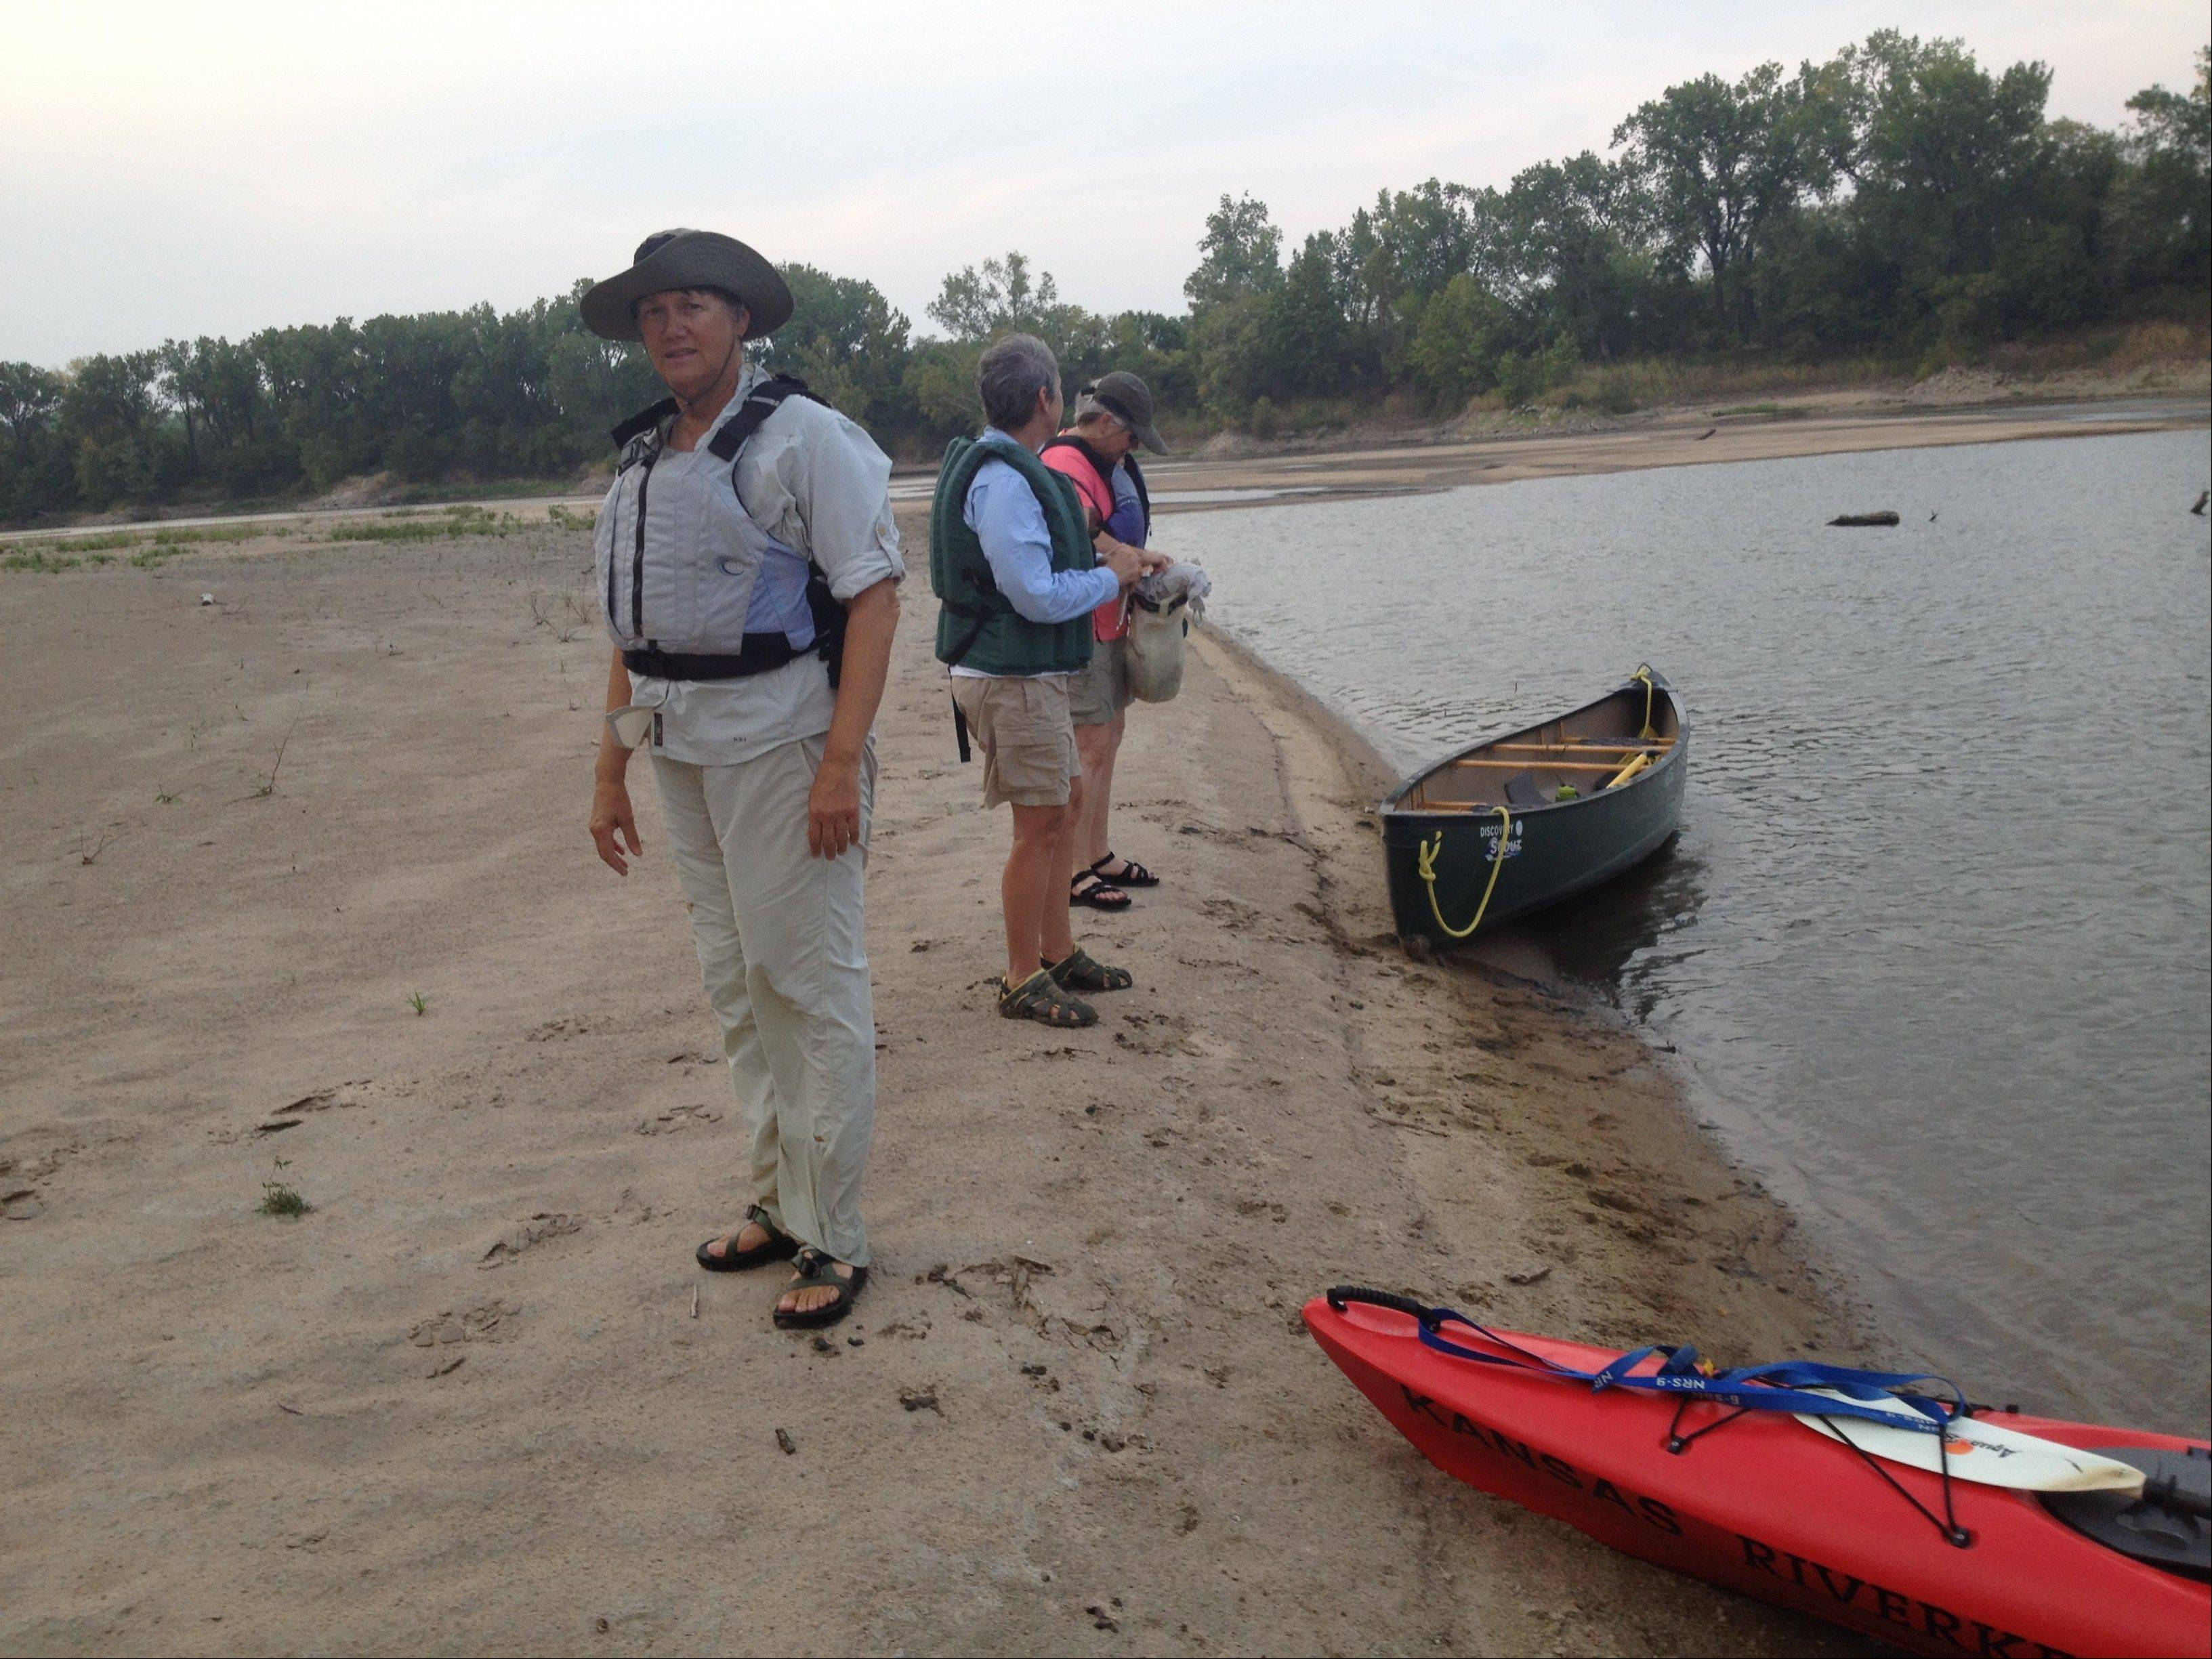 Paddlers take stop on a sandbar along the Kansas River near DeSoto, Kan.